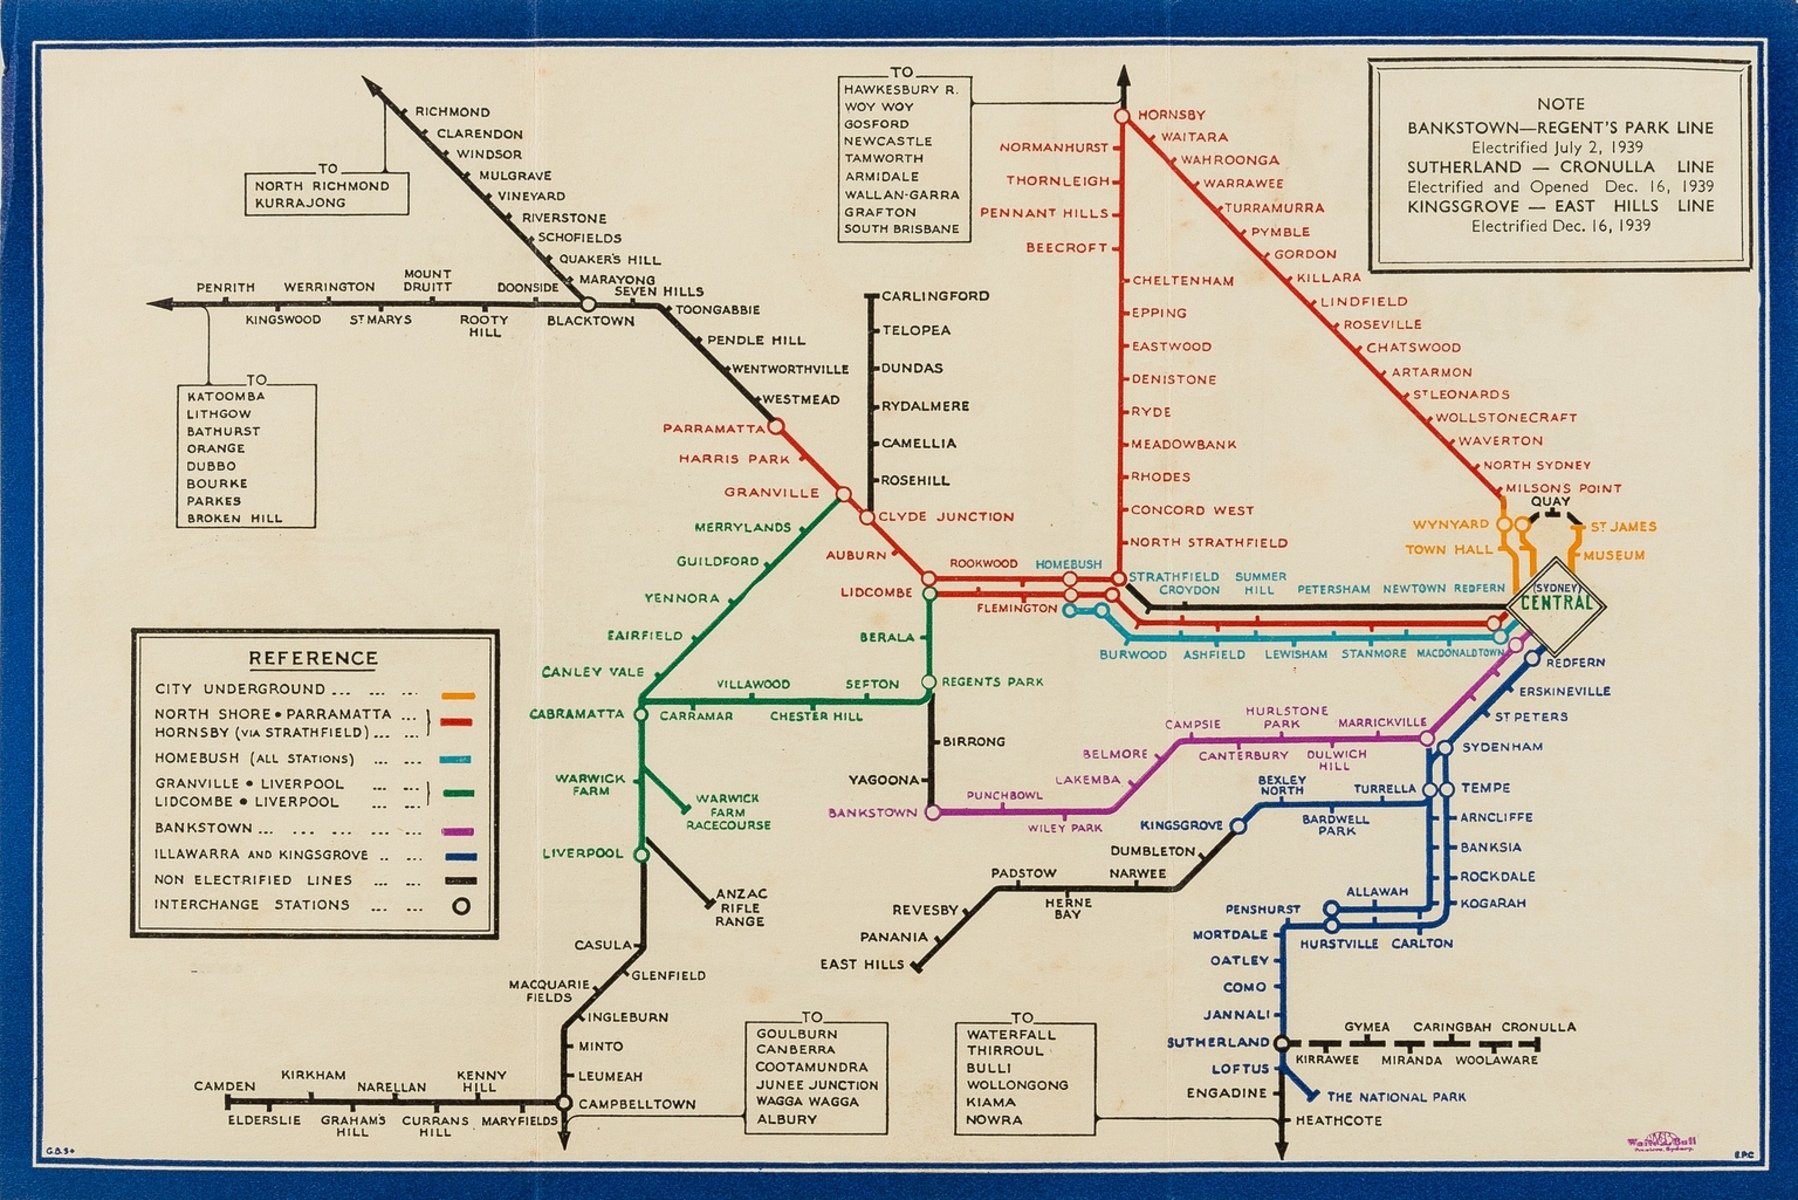 Australia.- Harry Beck London Underground variant.- Commissioner for Railways (New South Wales) …